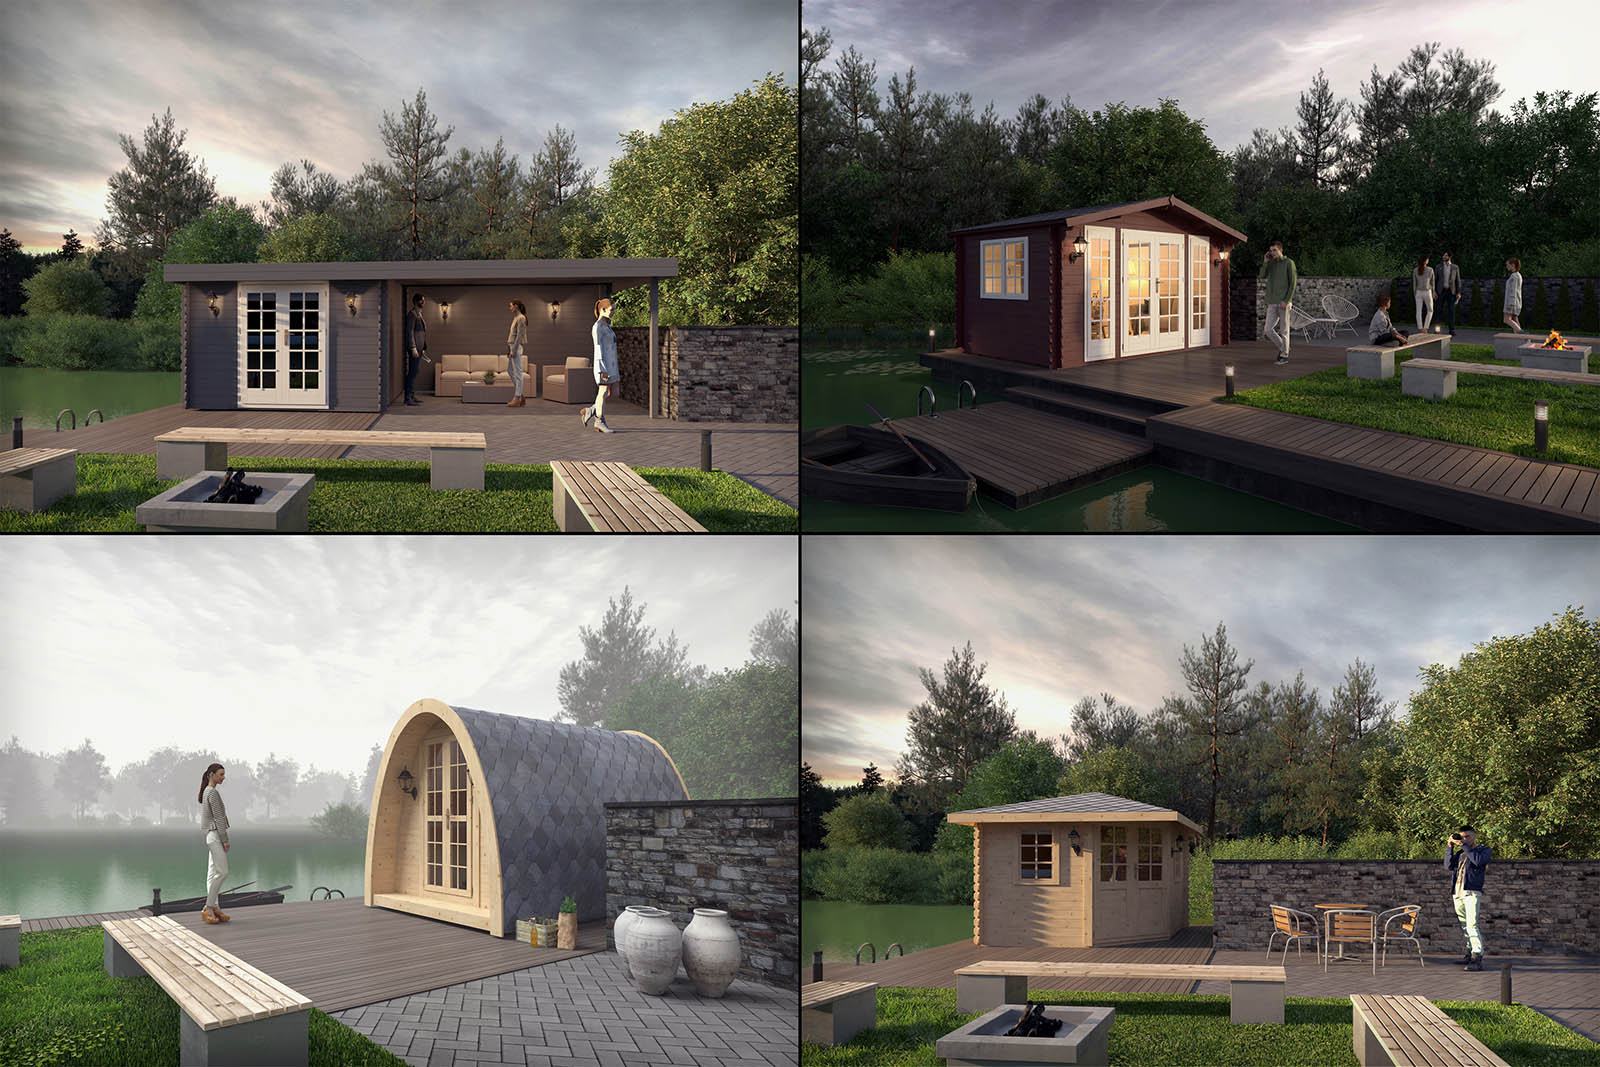 A project to present wooden cabins to the customers, used in a e-shop.